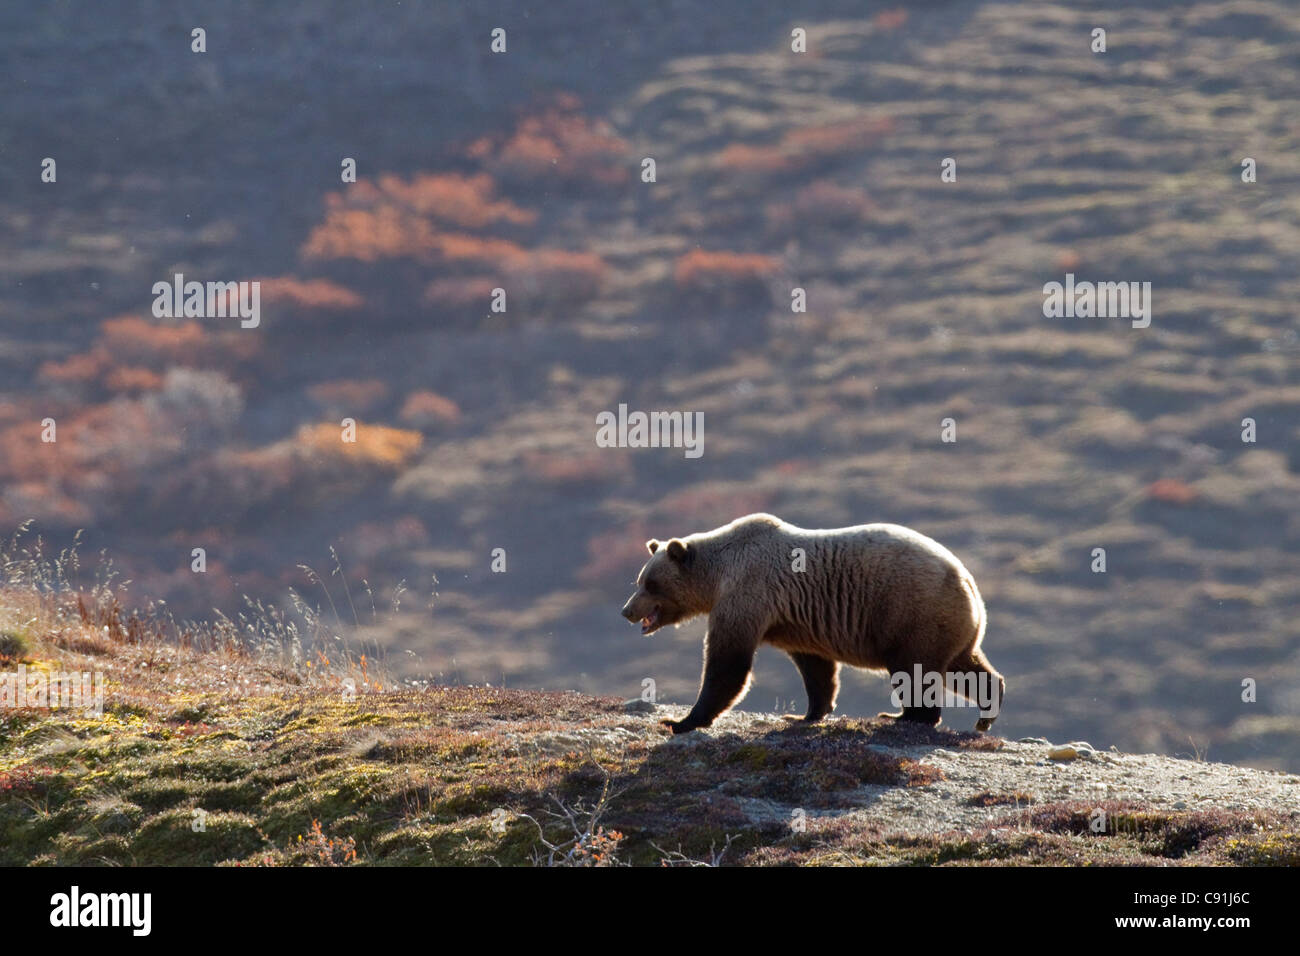 Grizzly bear walking on ridge with mountainside in Fall colors in background, Denali National park, Interior Alaska, - Stock Image